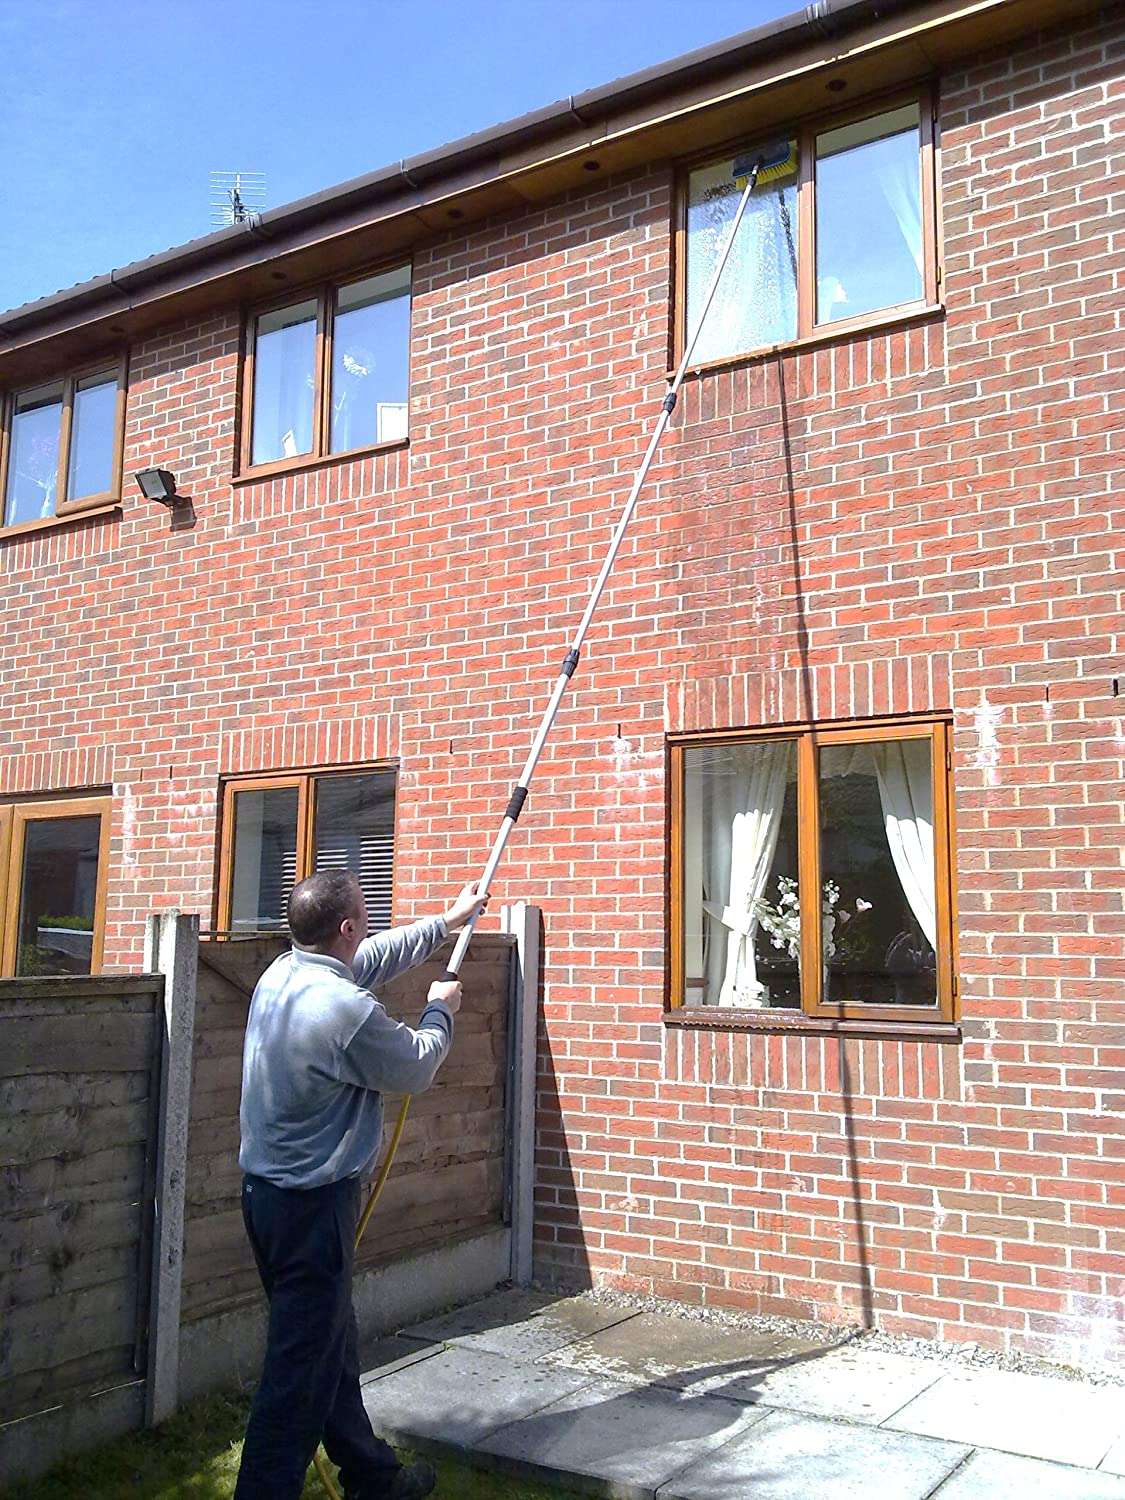 17 foot water fed extendable telescopic window cleaning pole built in squeegee blade conservatory veranda brush kit amazoncouk kitchen home - Window Cleaner Job Description